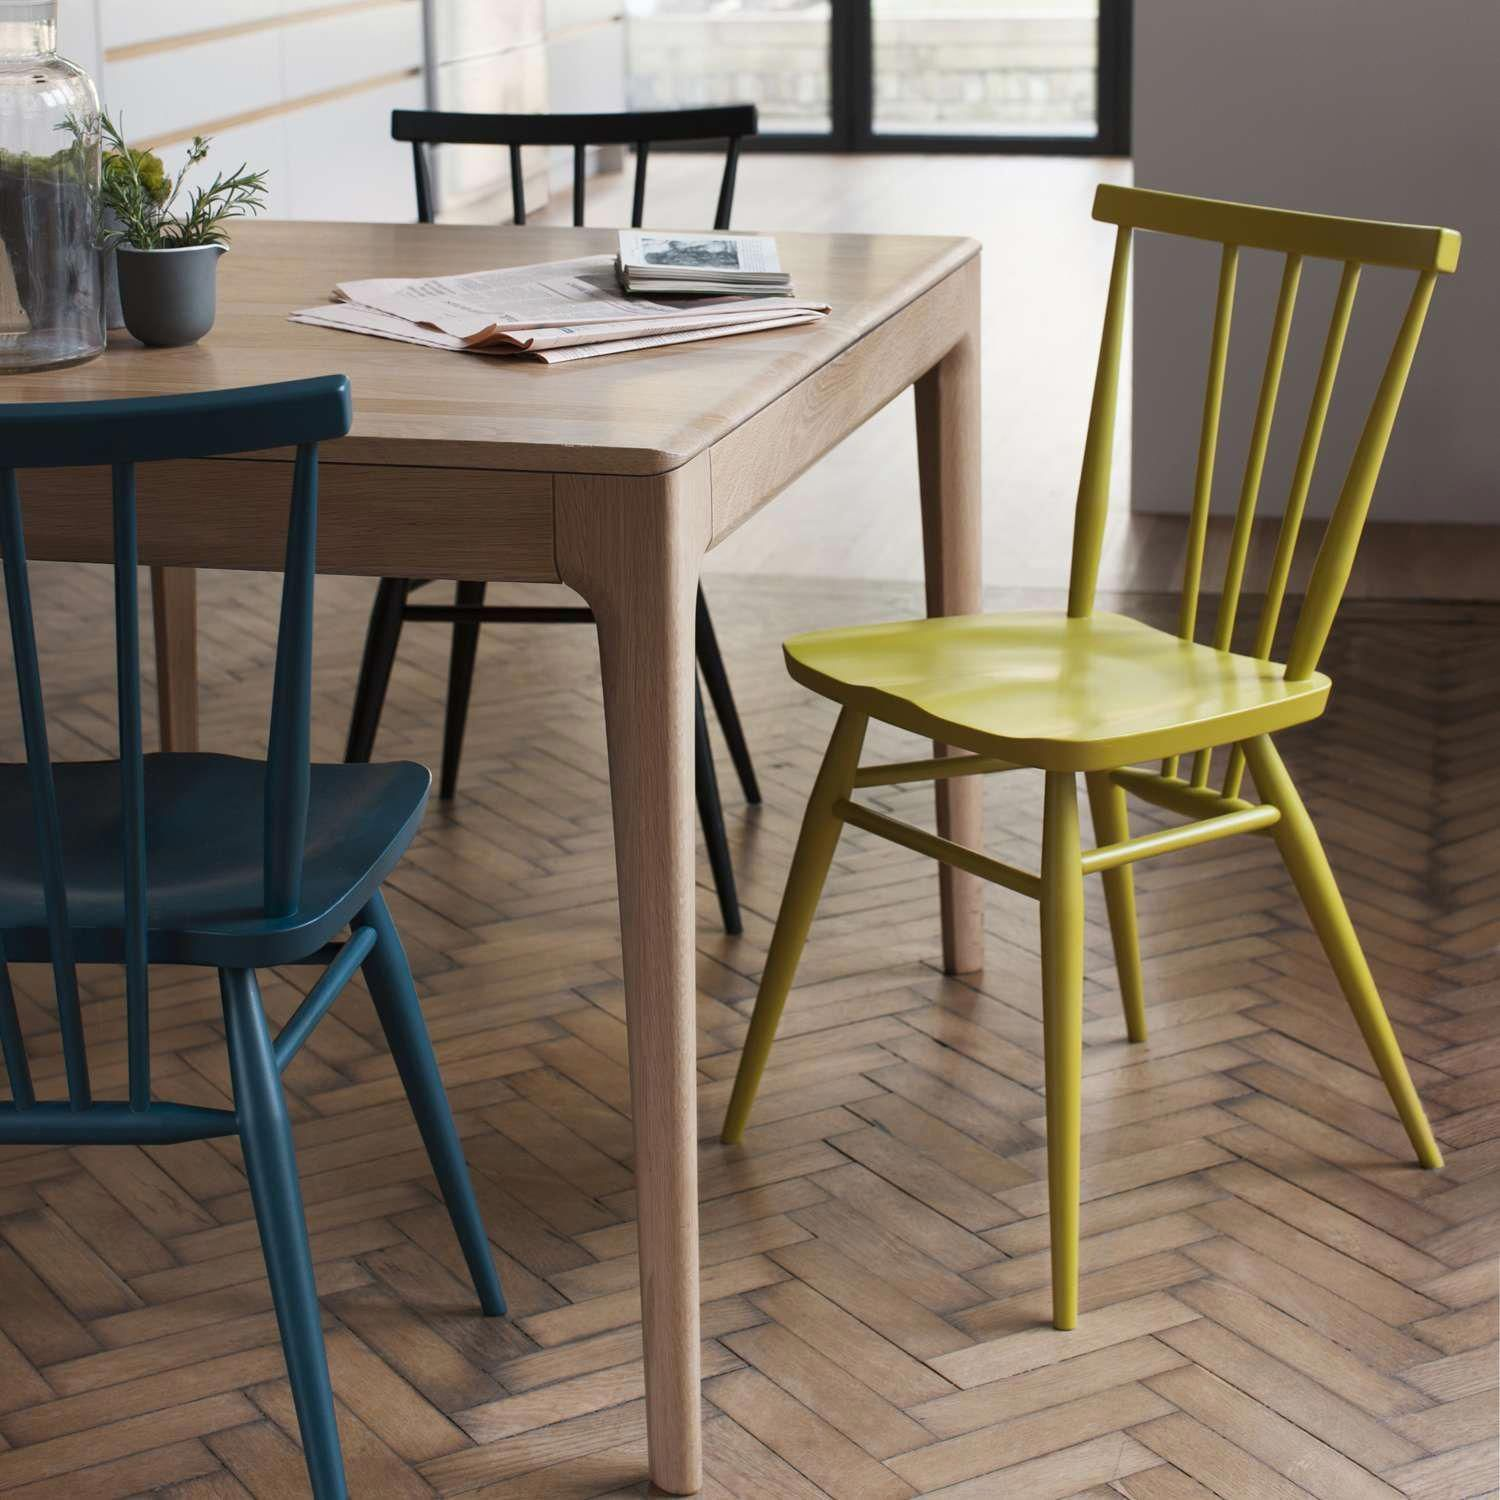 Staggering Tricks Dining Furniture Design Painted Dining